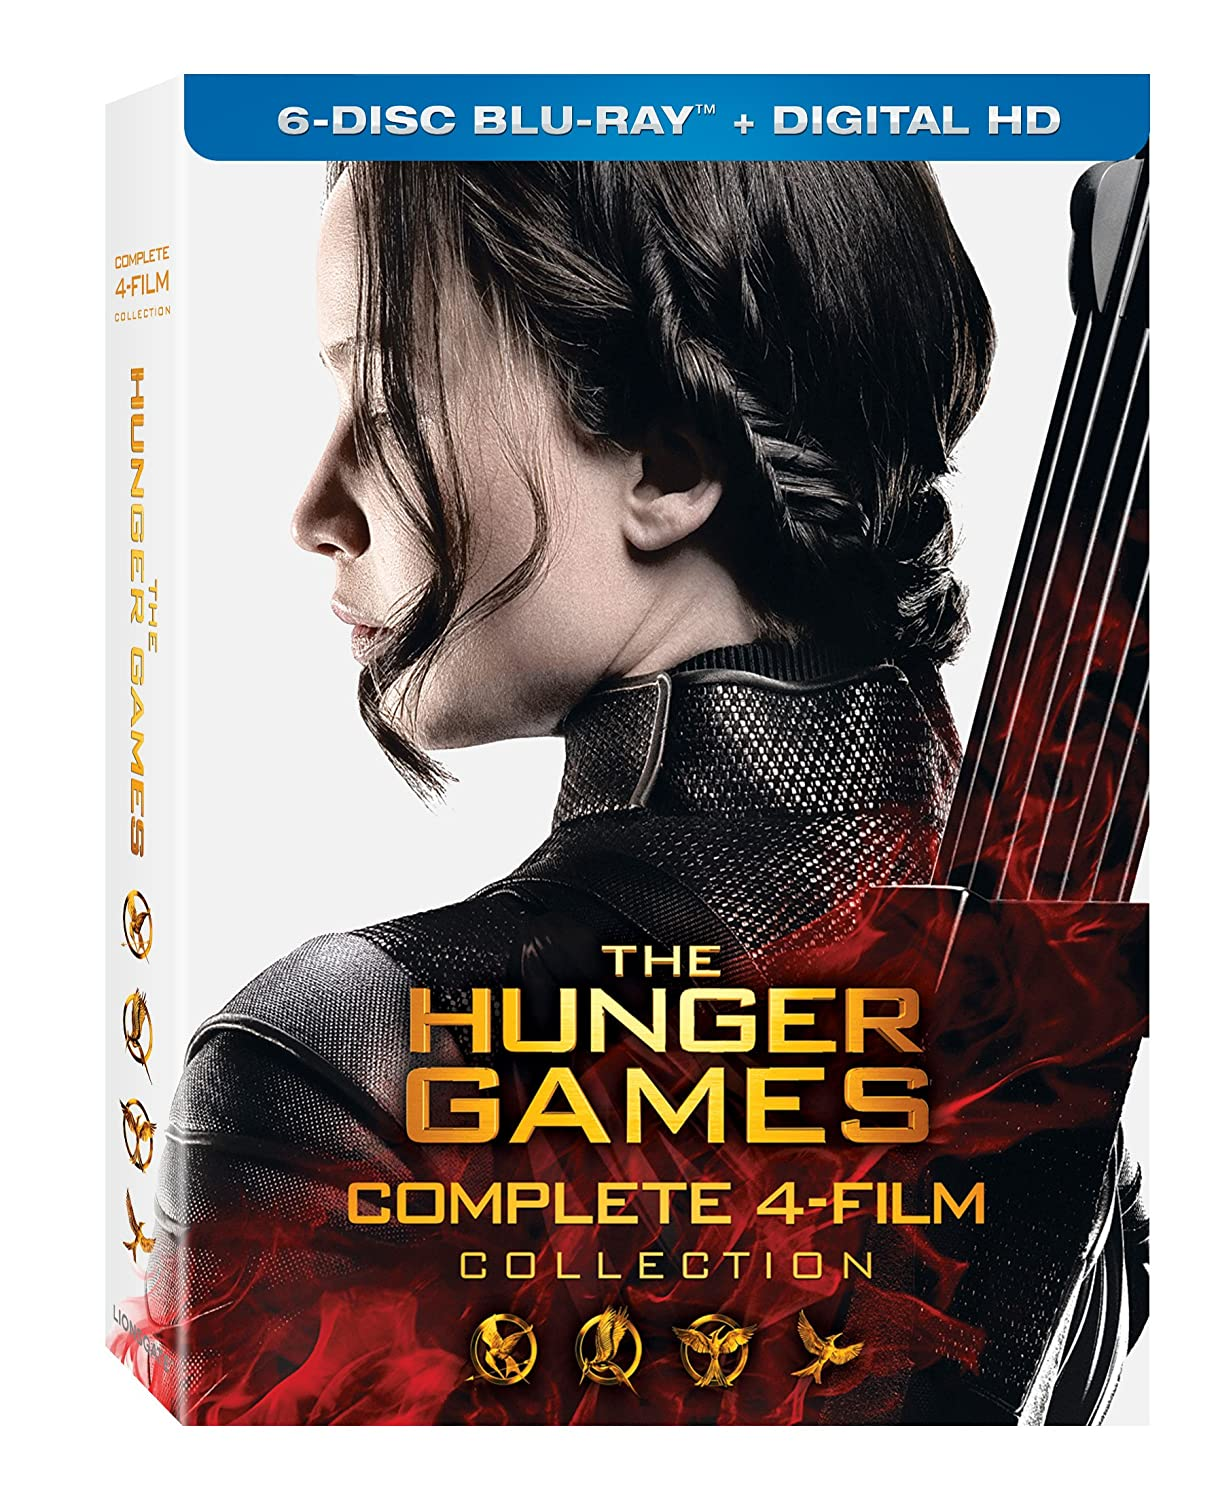 The Hunger Games: Complete 4 Film Collection (Blu-ray + Digital HD)